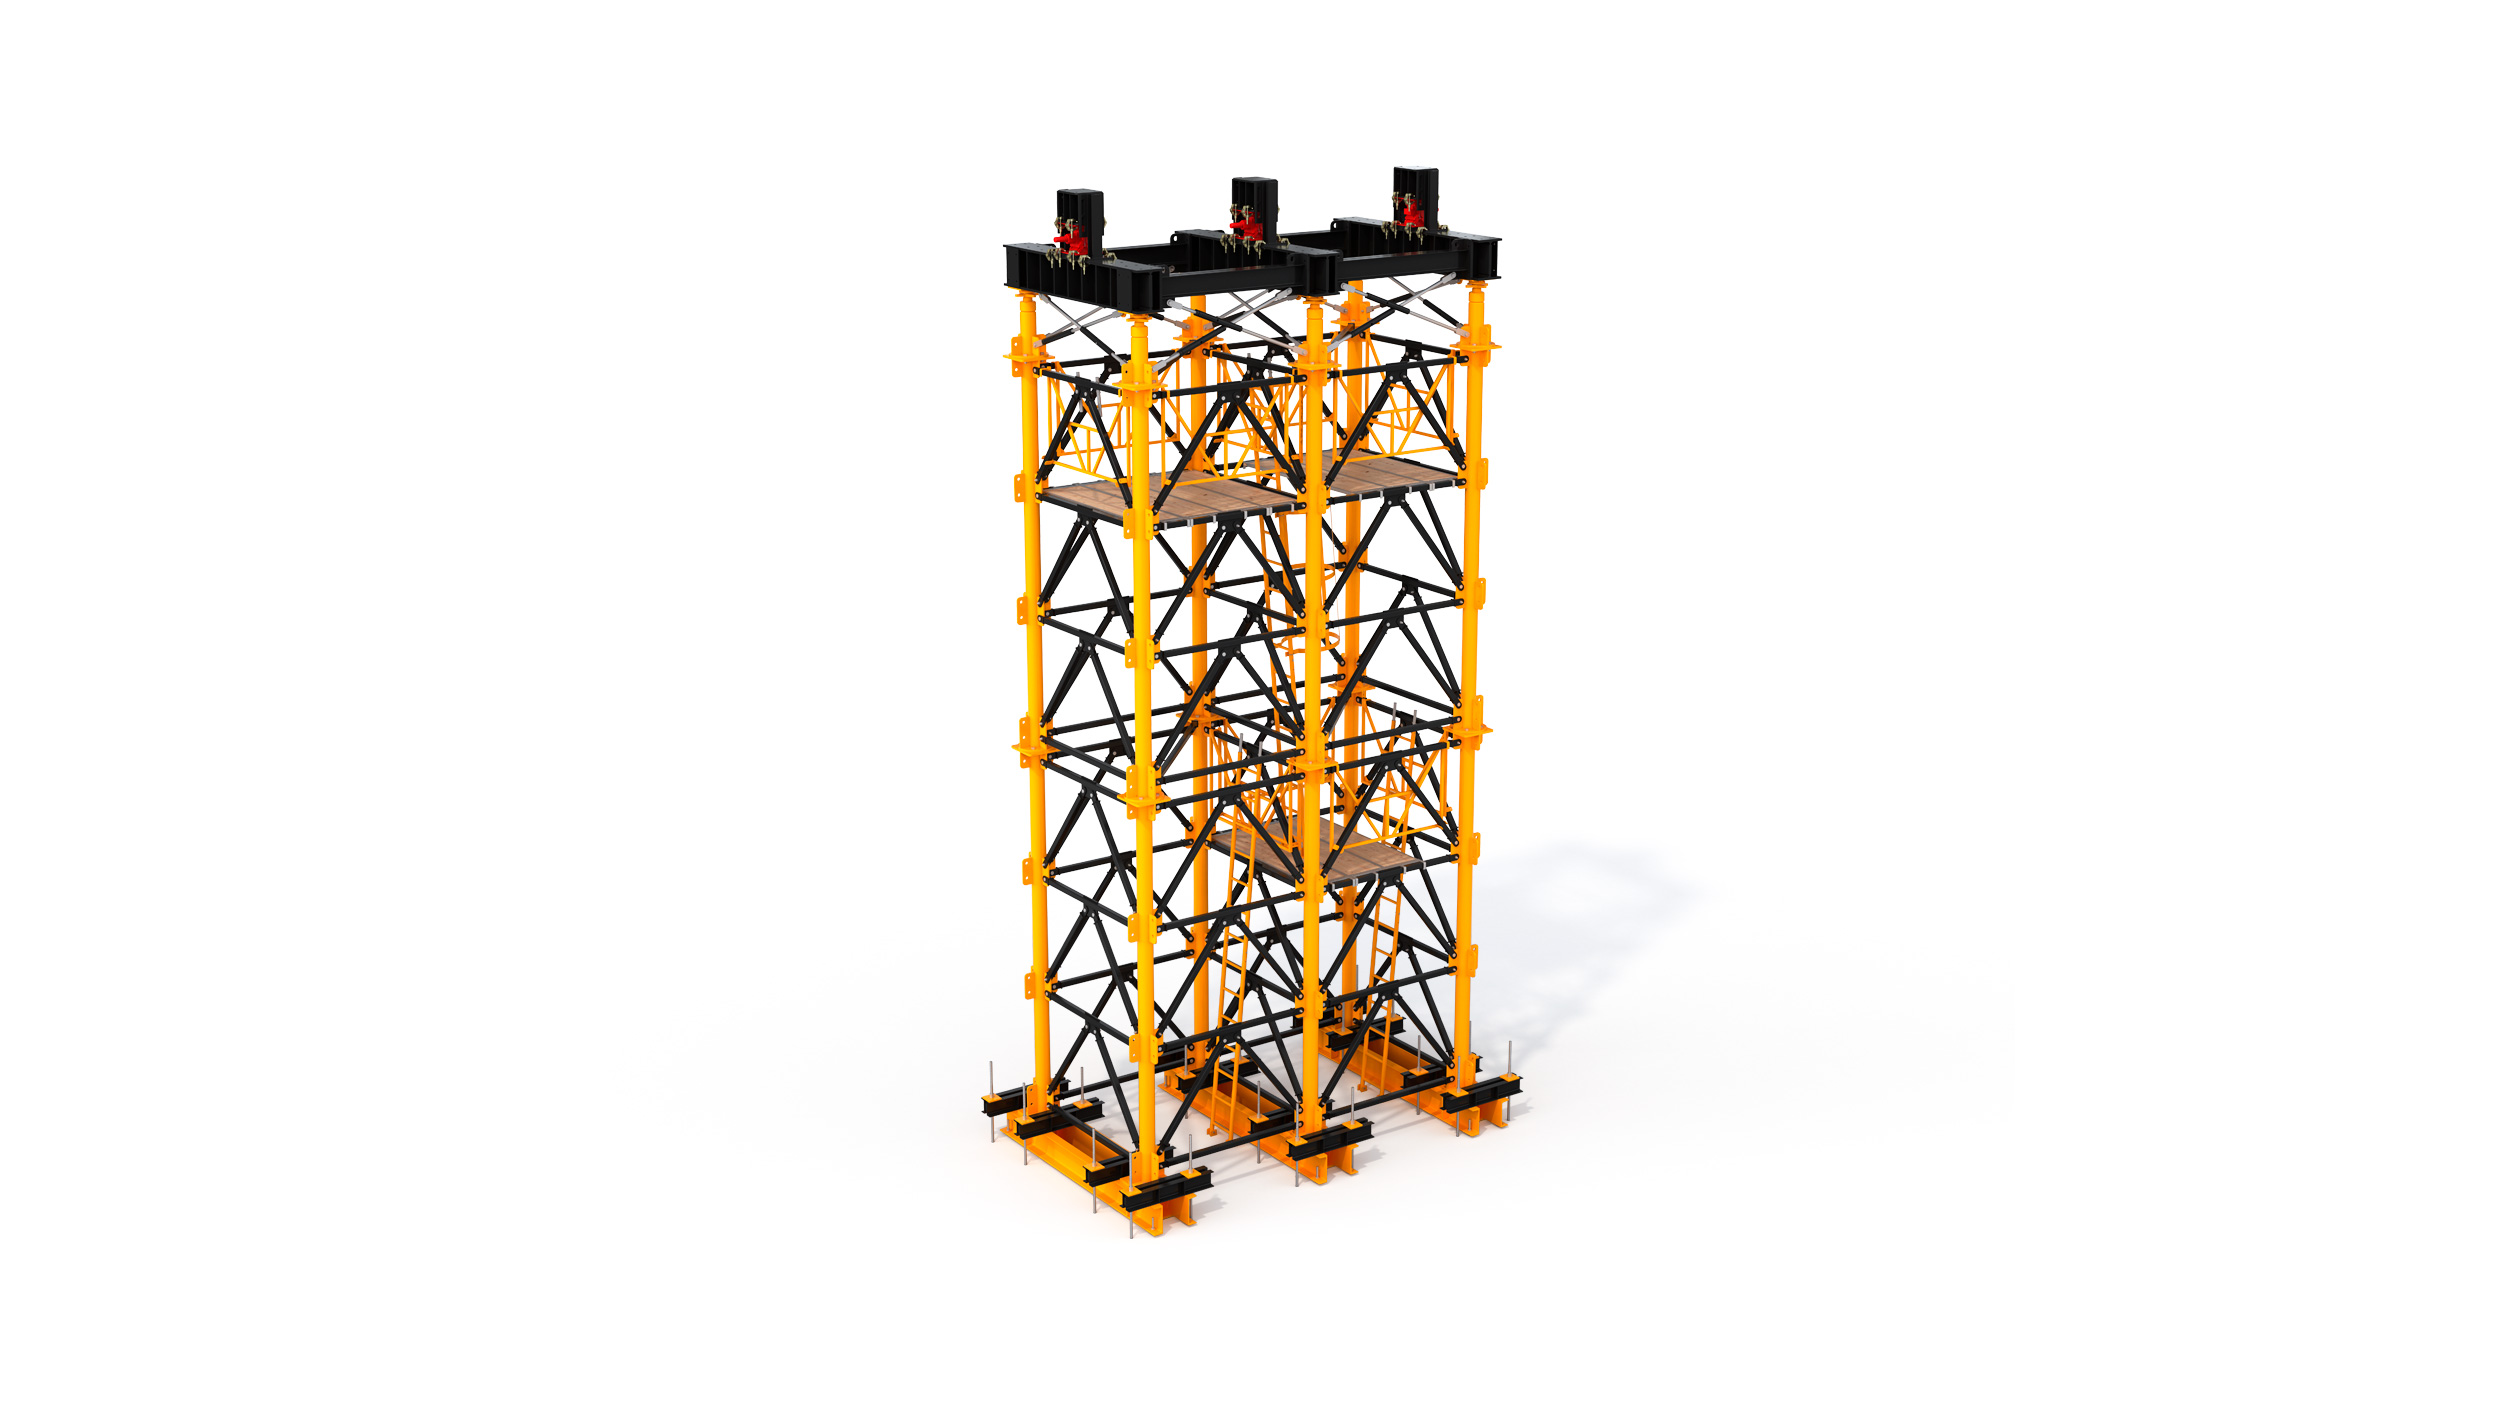 Heavy duty concrete shoring system mainly used for high-rise bridge or viaduct constructions. Highlights: modular system, easy transport, quick and safe on-site erection.